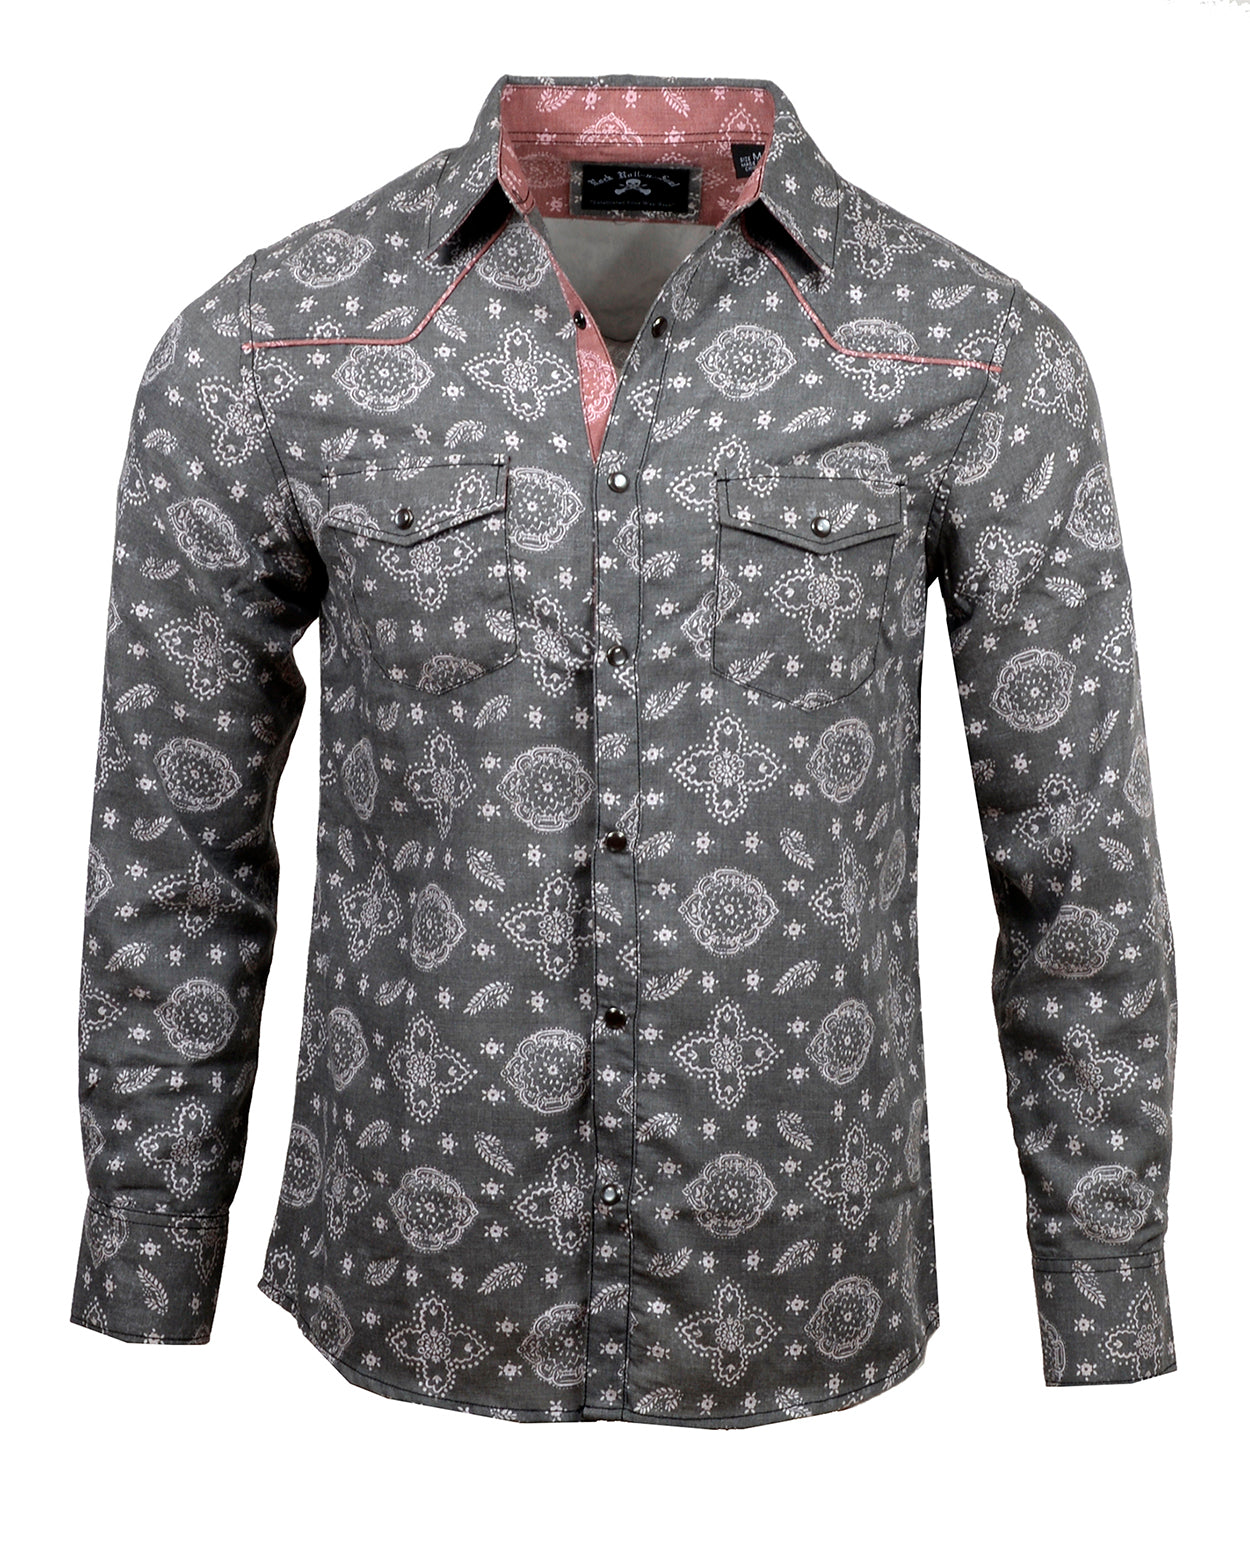 Men's Casual Fashion Button Up Shirt - The Gambler by Rock Roll n Soul